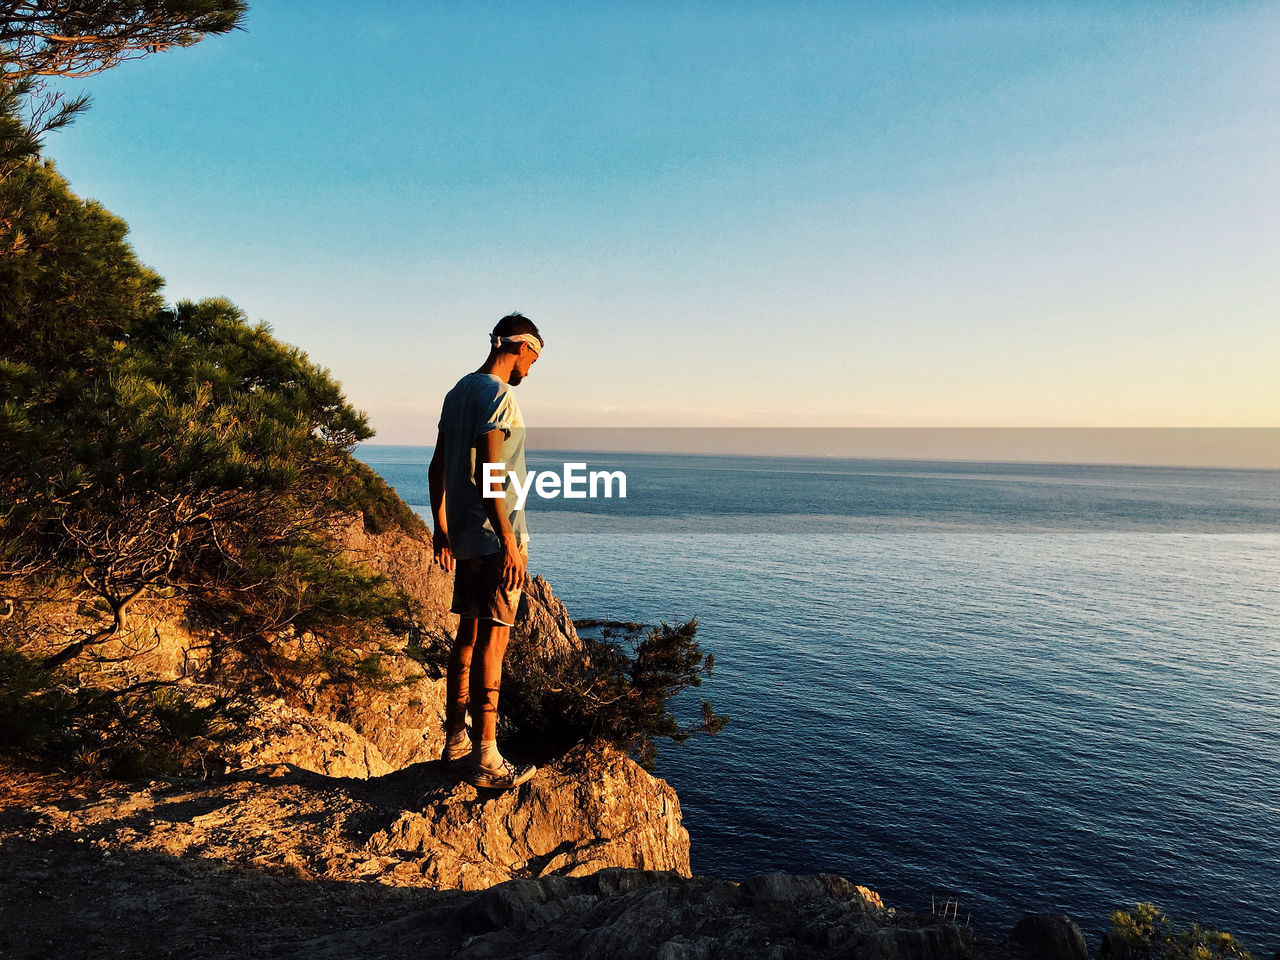 sky, sea, scenics - nature, real people, one person, lifestyles, rock - object, beauty in nature, rock, leisure activity, water, young adult, solid, standing, full length, young men, nature, tranquility, side view, horizon over water, outdoors